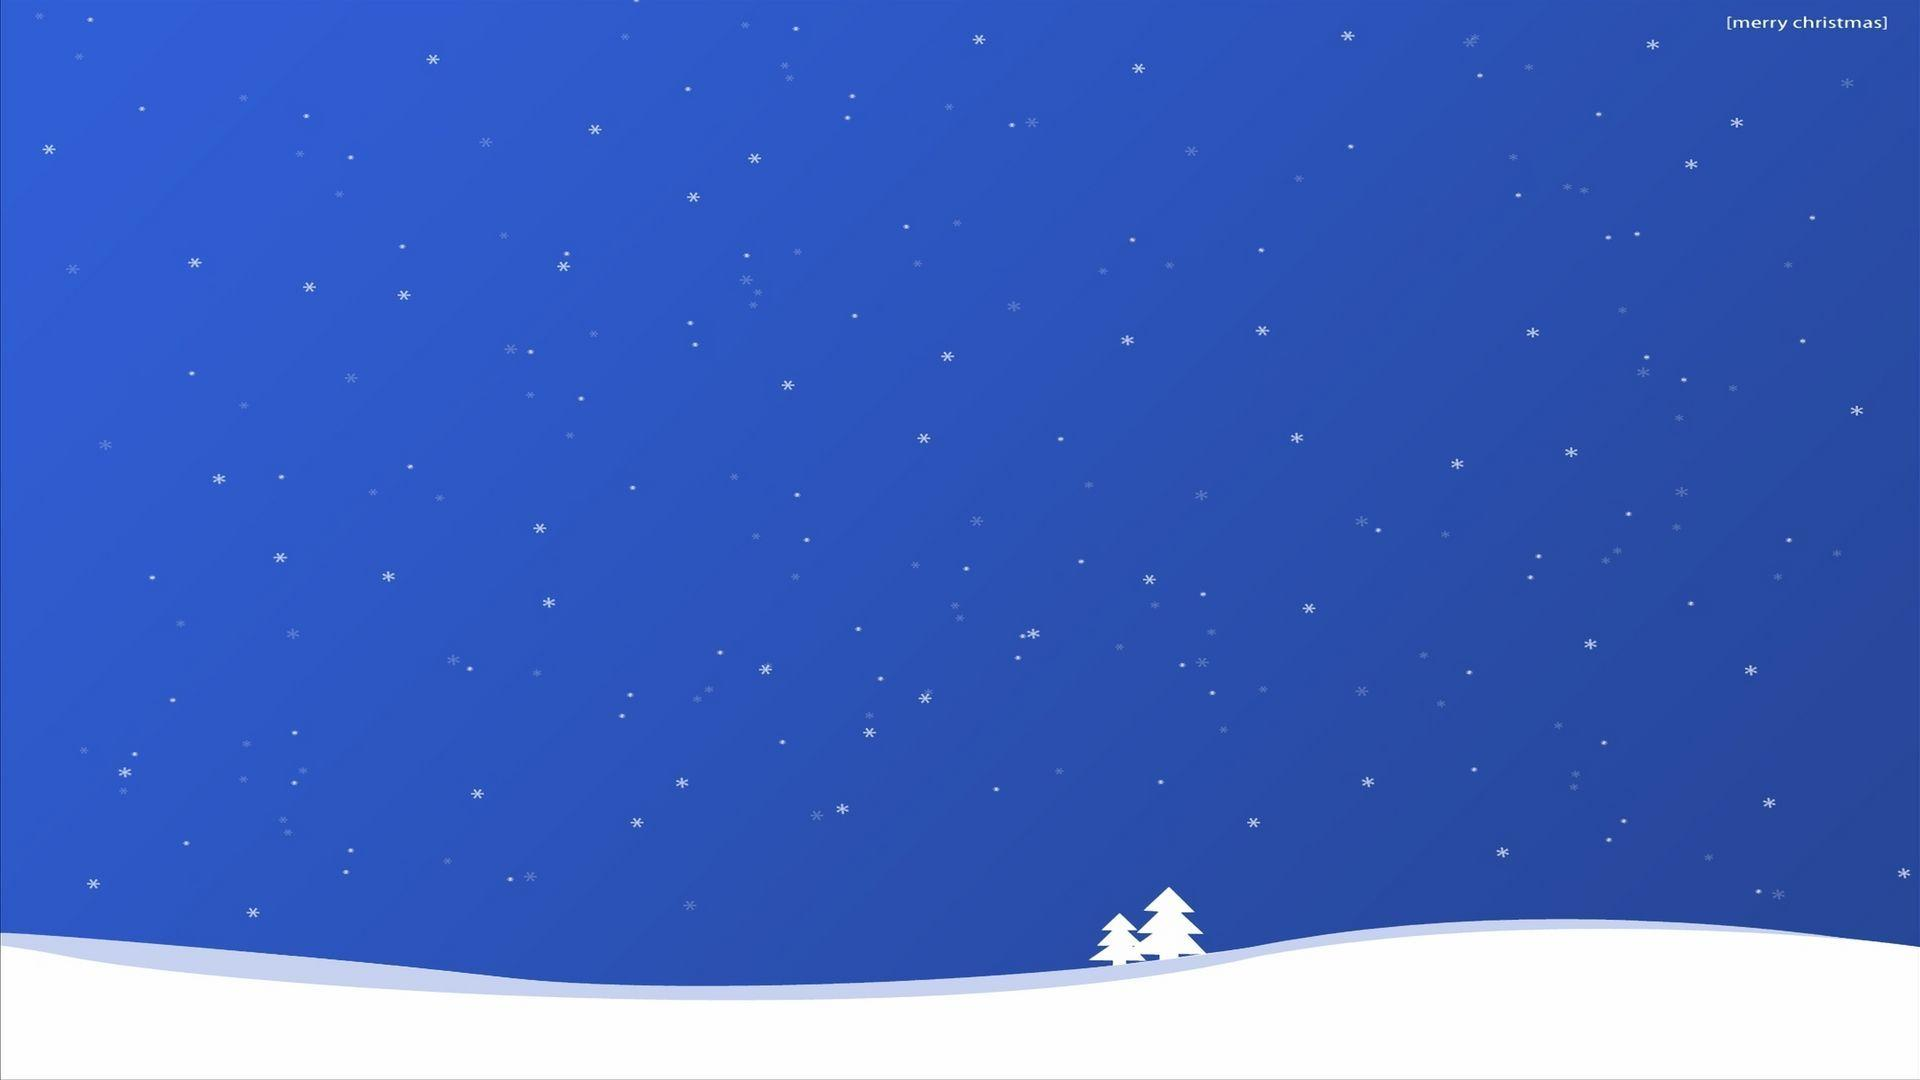 Christmas Wallpapers 1920X1080 wallpapers